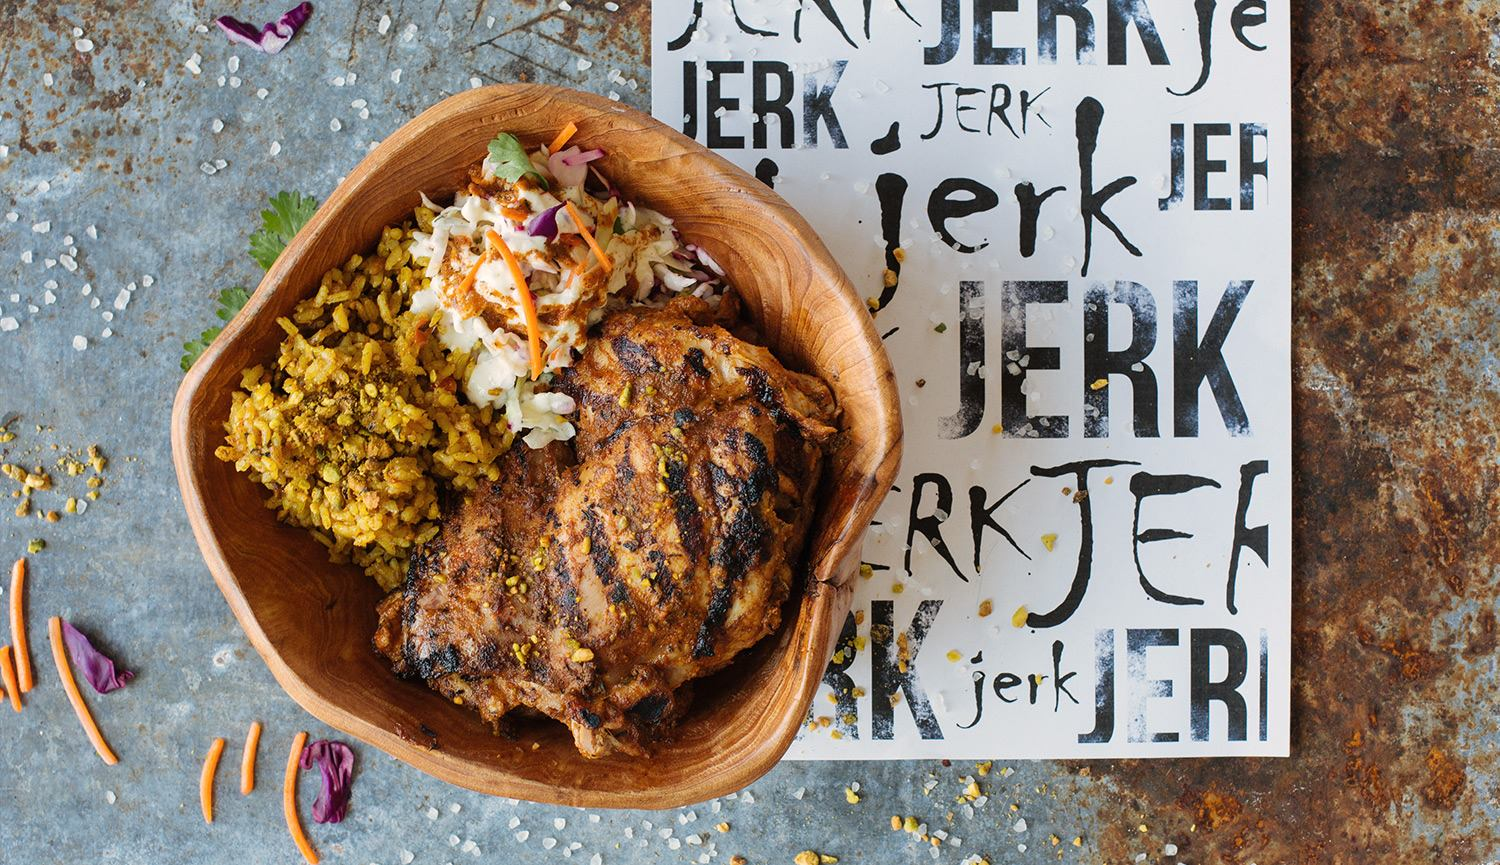 Grilled Jerk Chicken Bowl